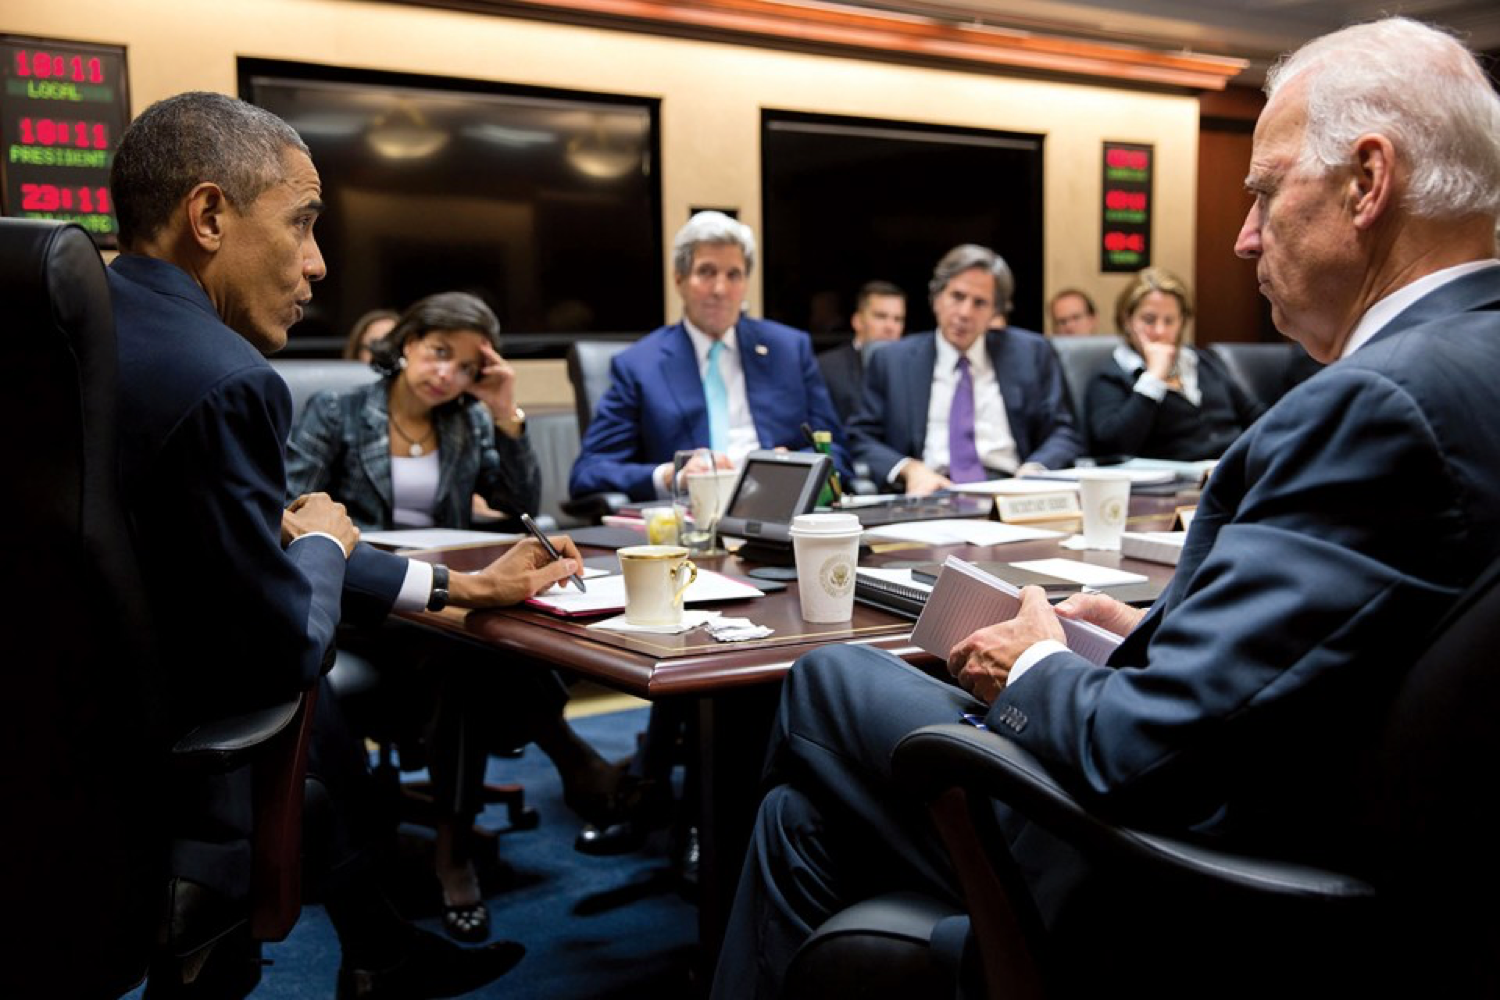 Obama and Vice President Joe Biden meet with members of the National Security Council, including Susan Rice and John Kerry (second and third from left), in December 2014. (Pete Souza / White House)